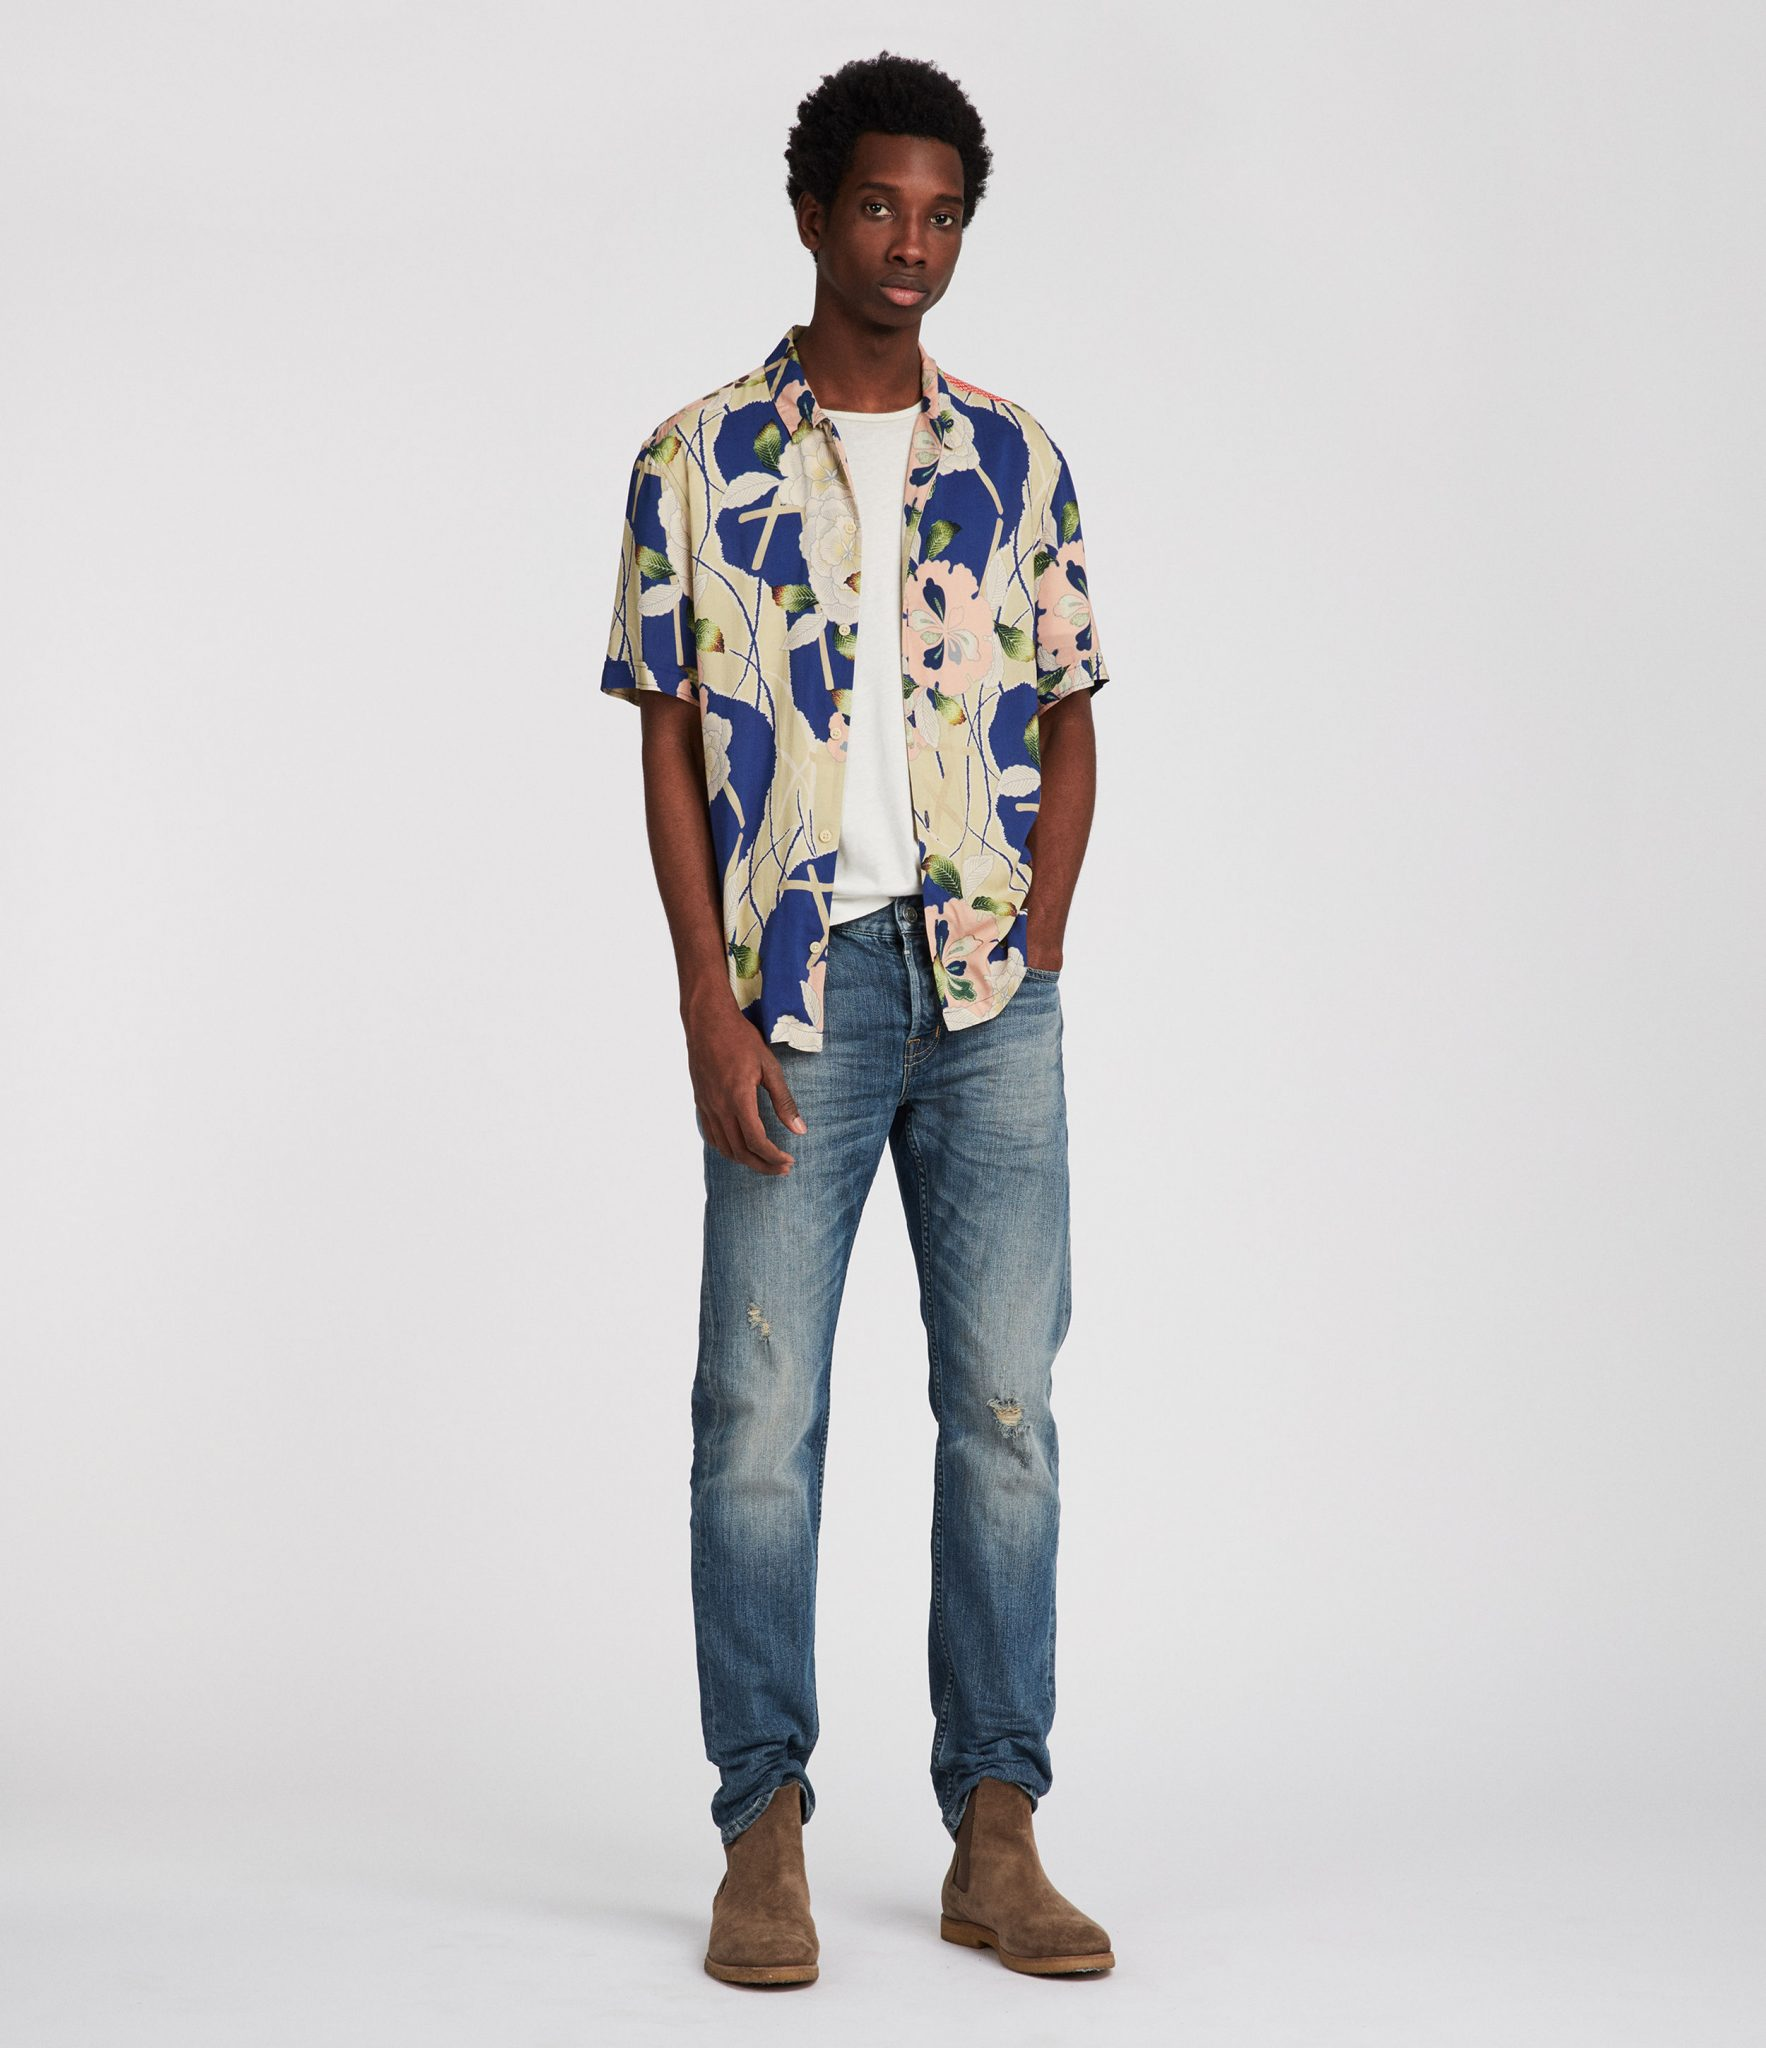 98b61764 How to Wear a Hawaiian Shirt (and Look Cool) | Dapper Confidential